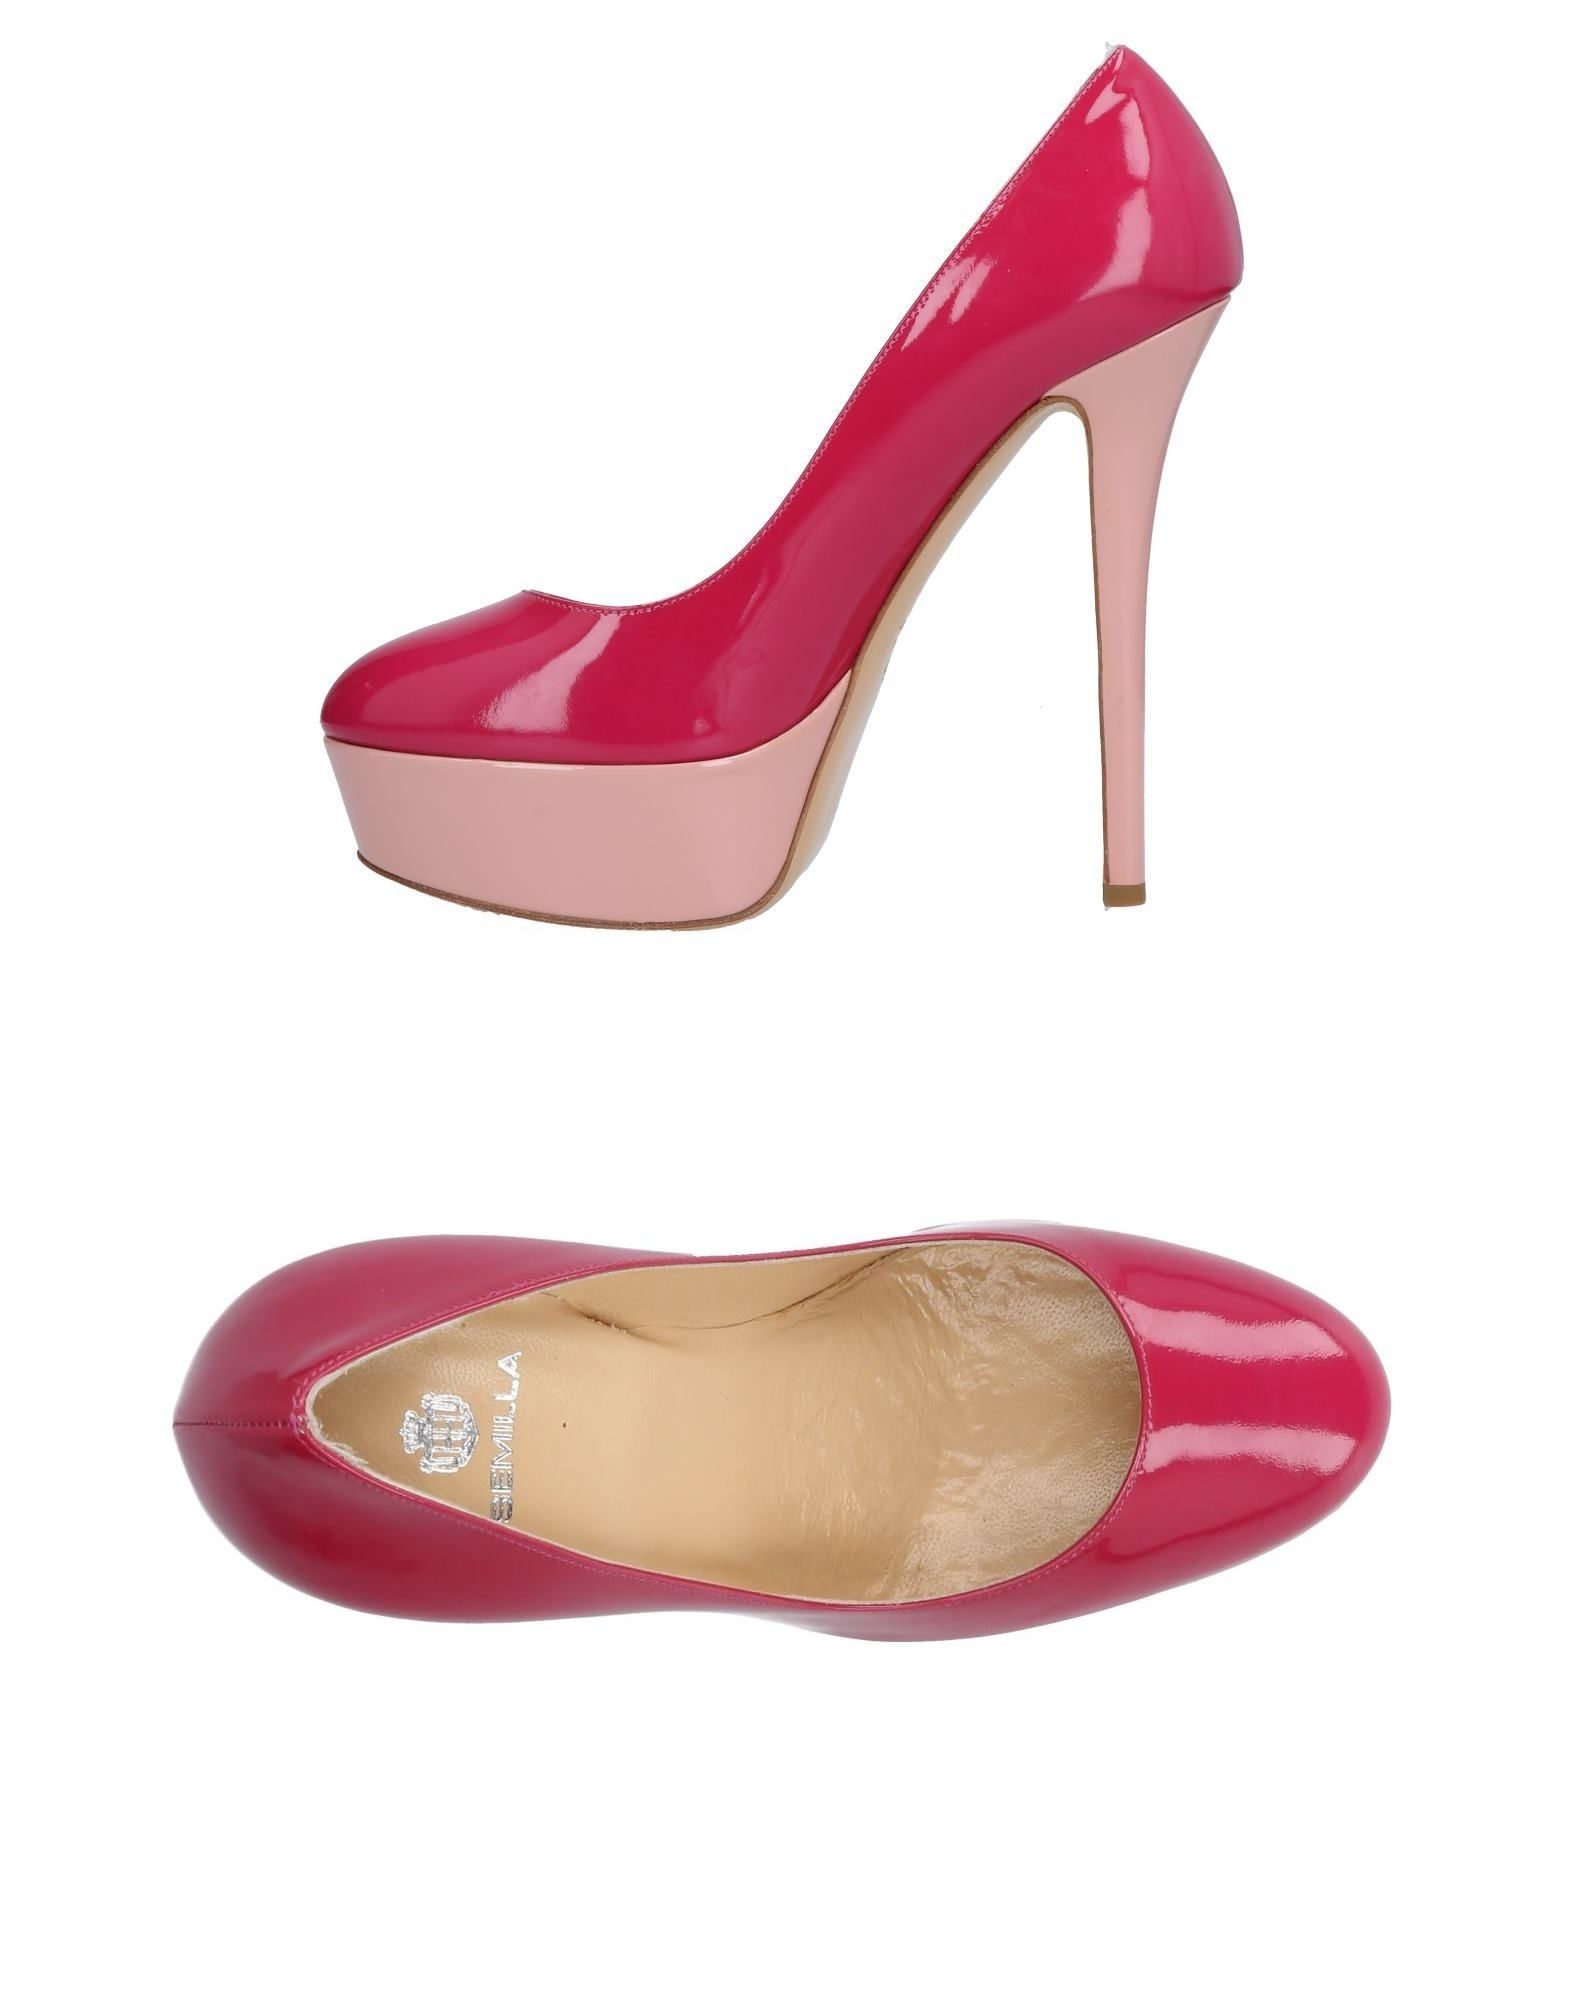 SEMILLA Pump in Fuchsia